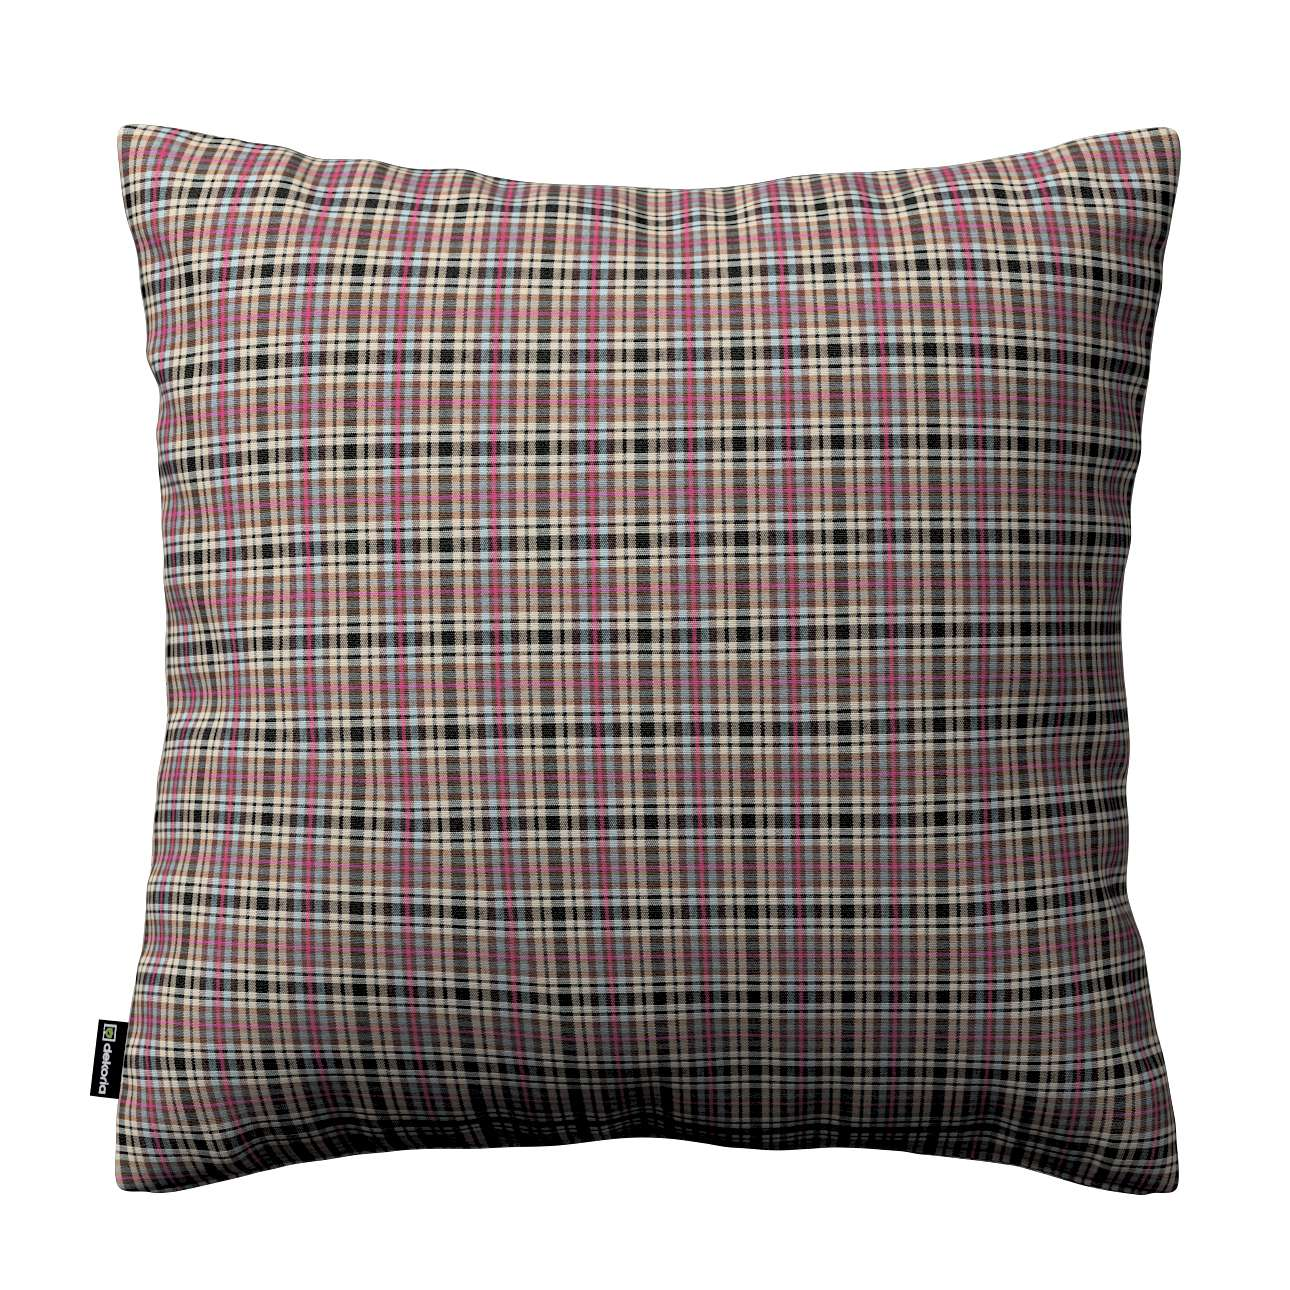 Kinga cushion cover 43 × 43 cm (17 × 17 inch) in collection Bristol, fabric: 126-32